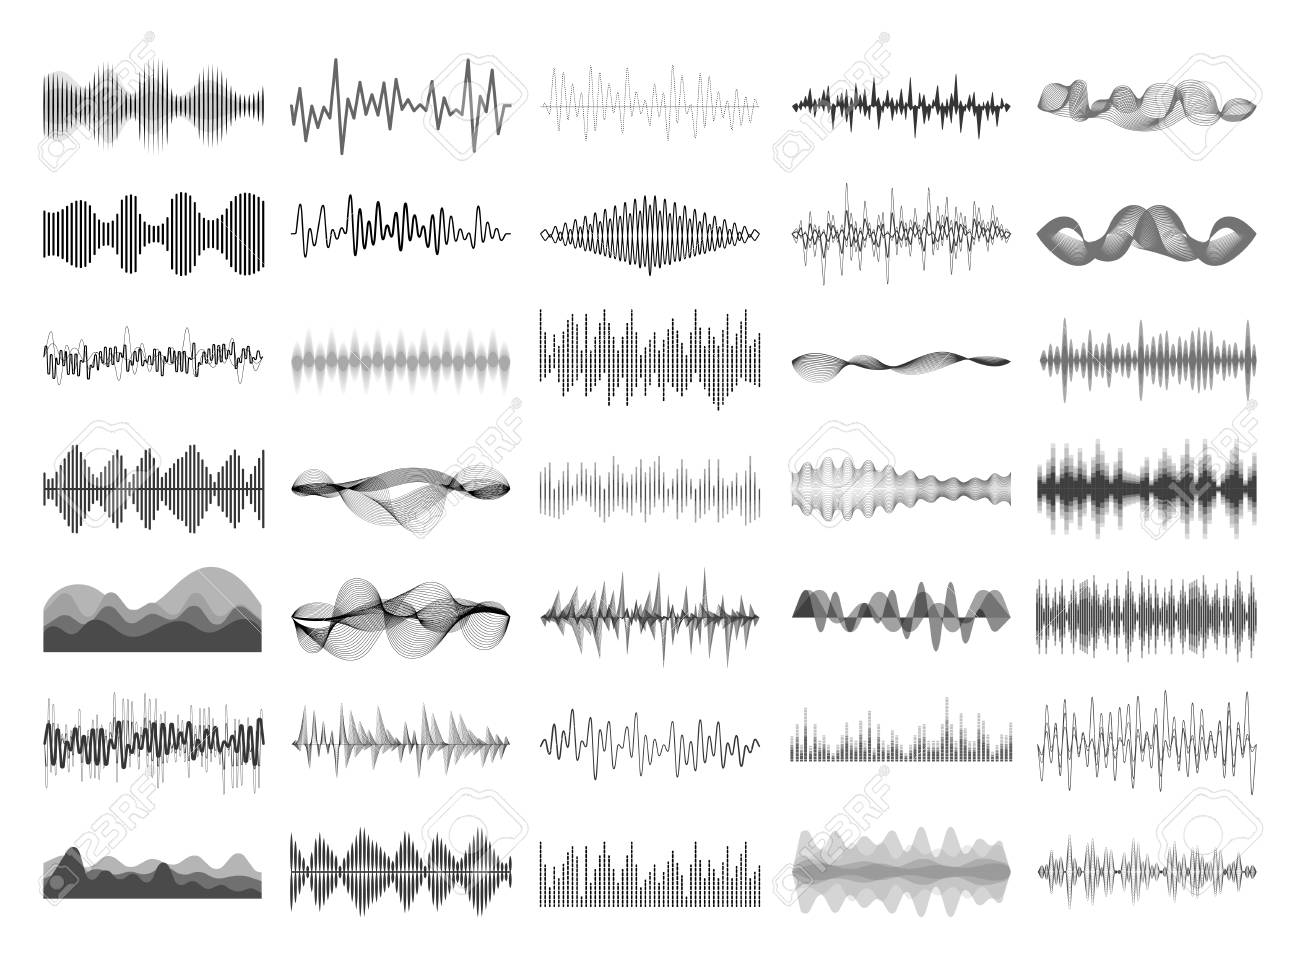 what is the amplitude of a sound wave